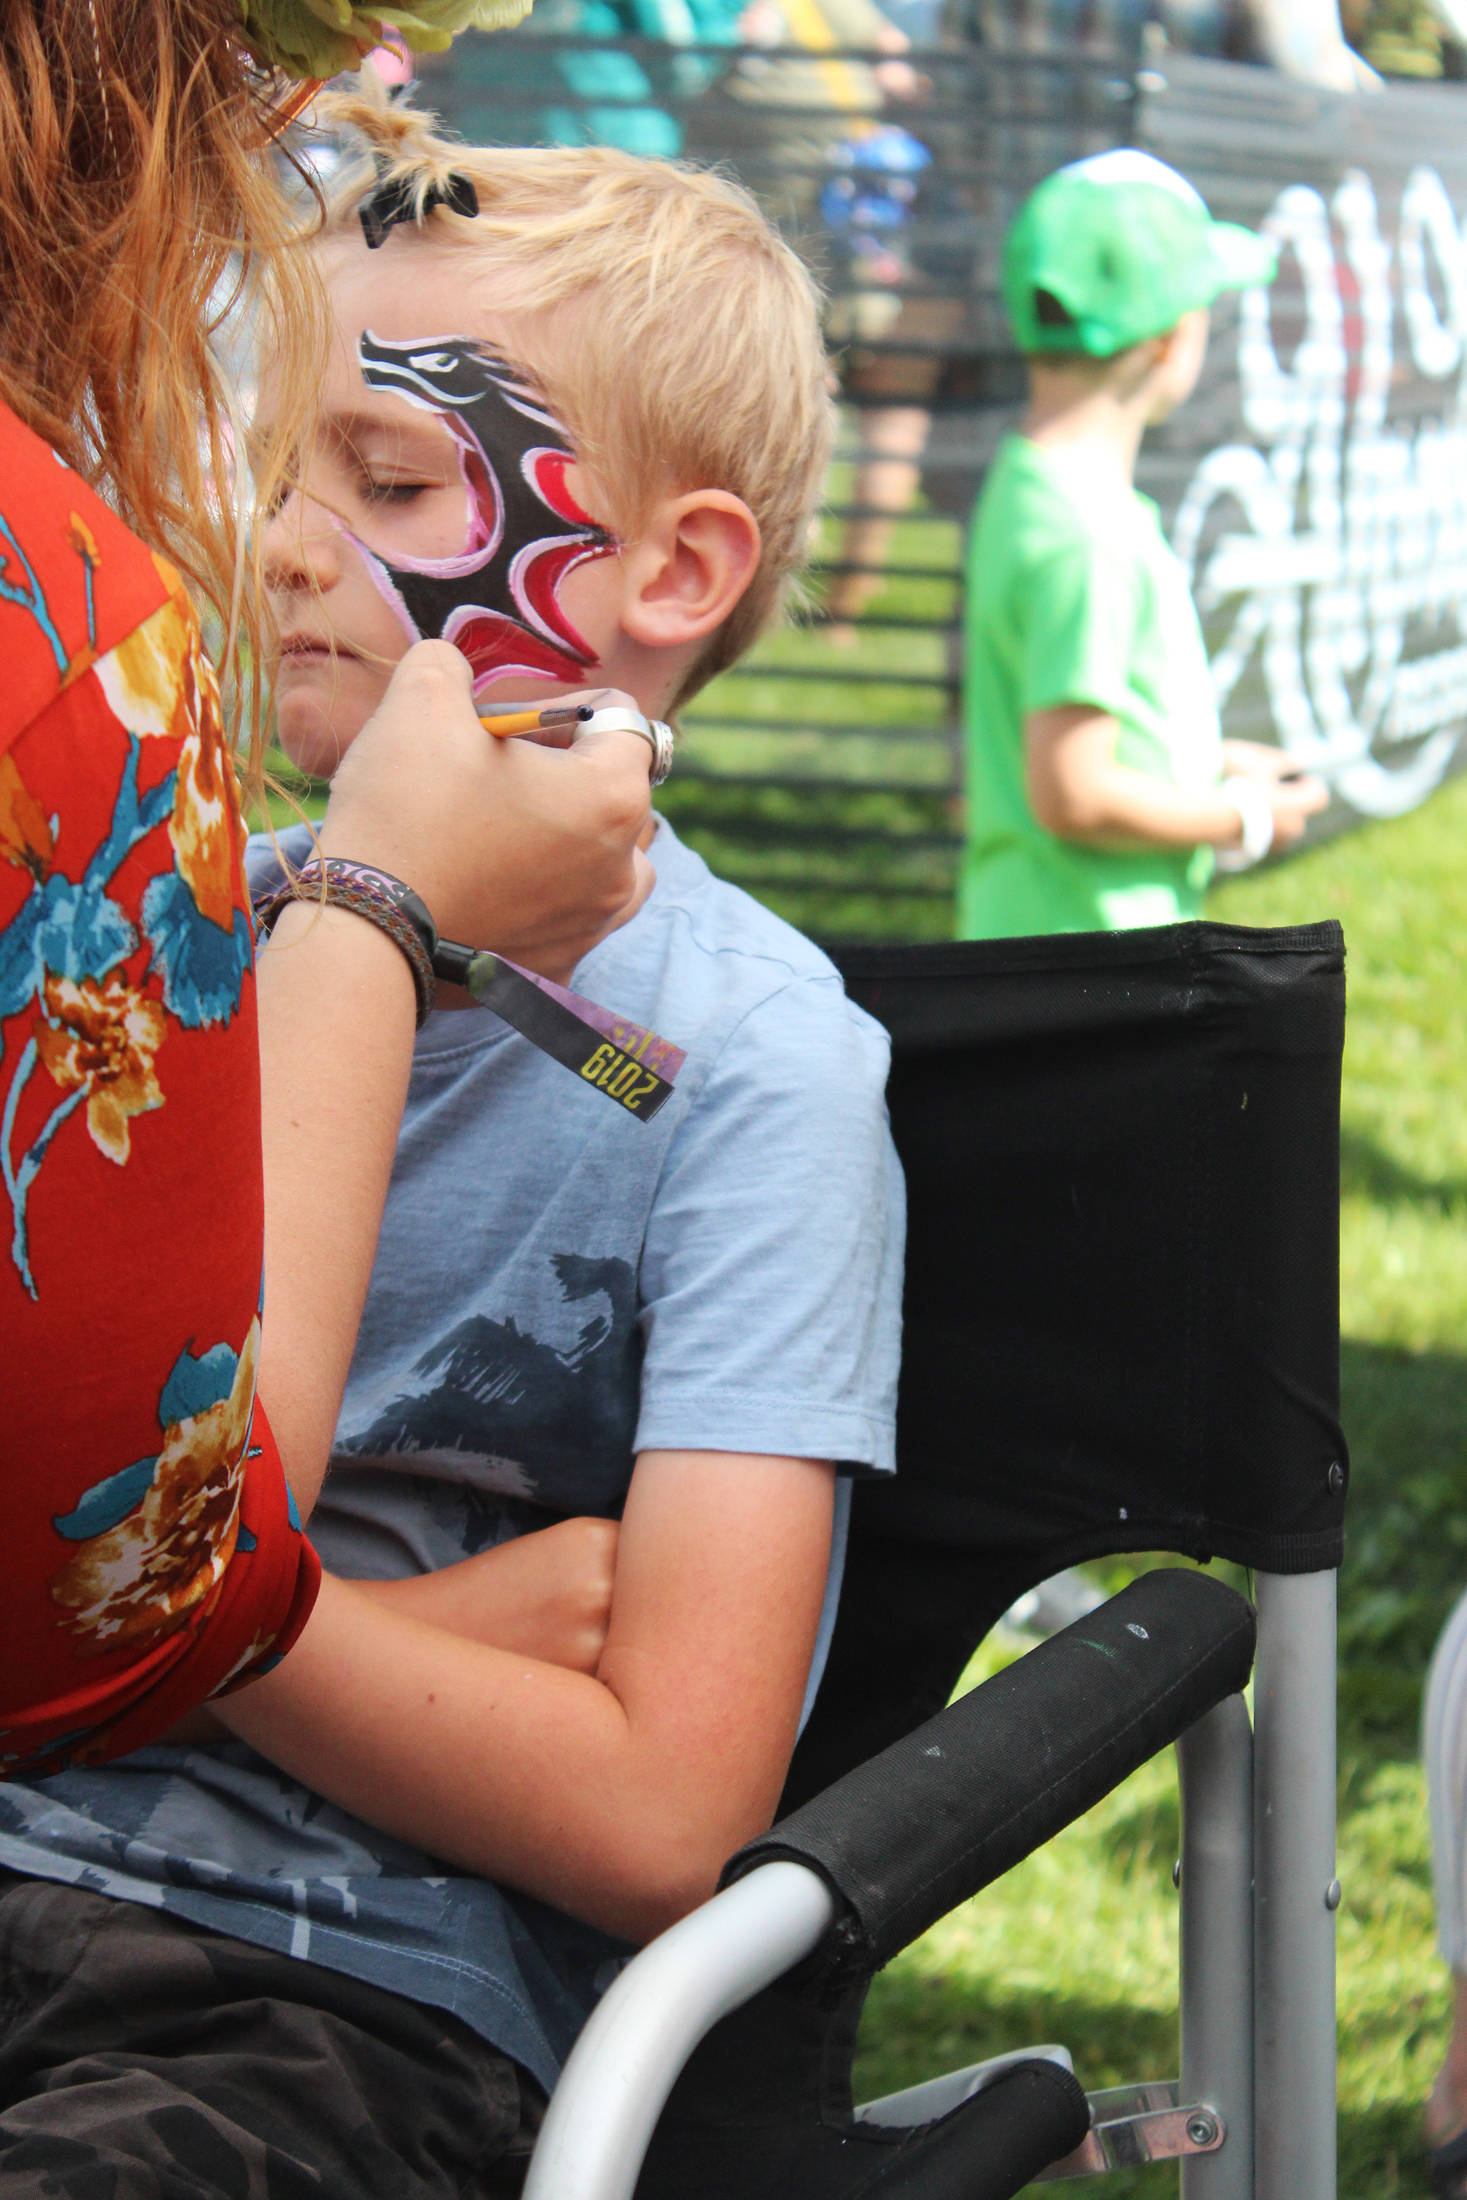 Iver Ledahl, 8, of Kenai, gets his face painted on Friday, Aug. 2, 2019 at Salmonfest in Ninilchik, Alaska. (Photo by Megan Pacer/Homer News)